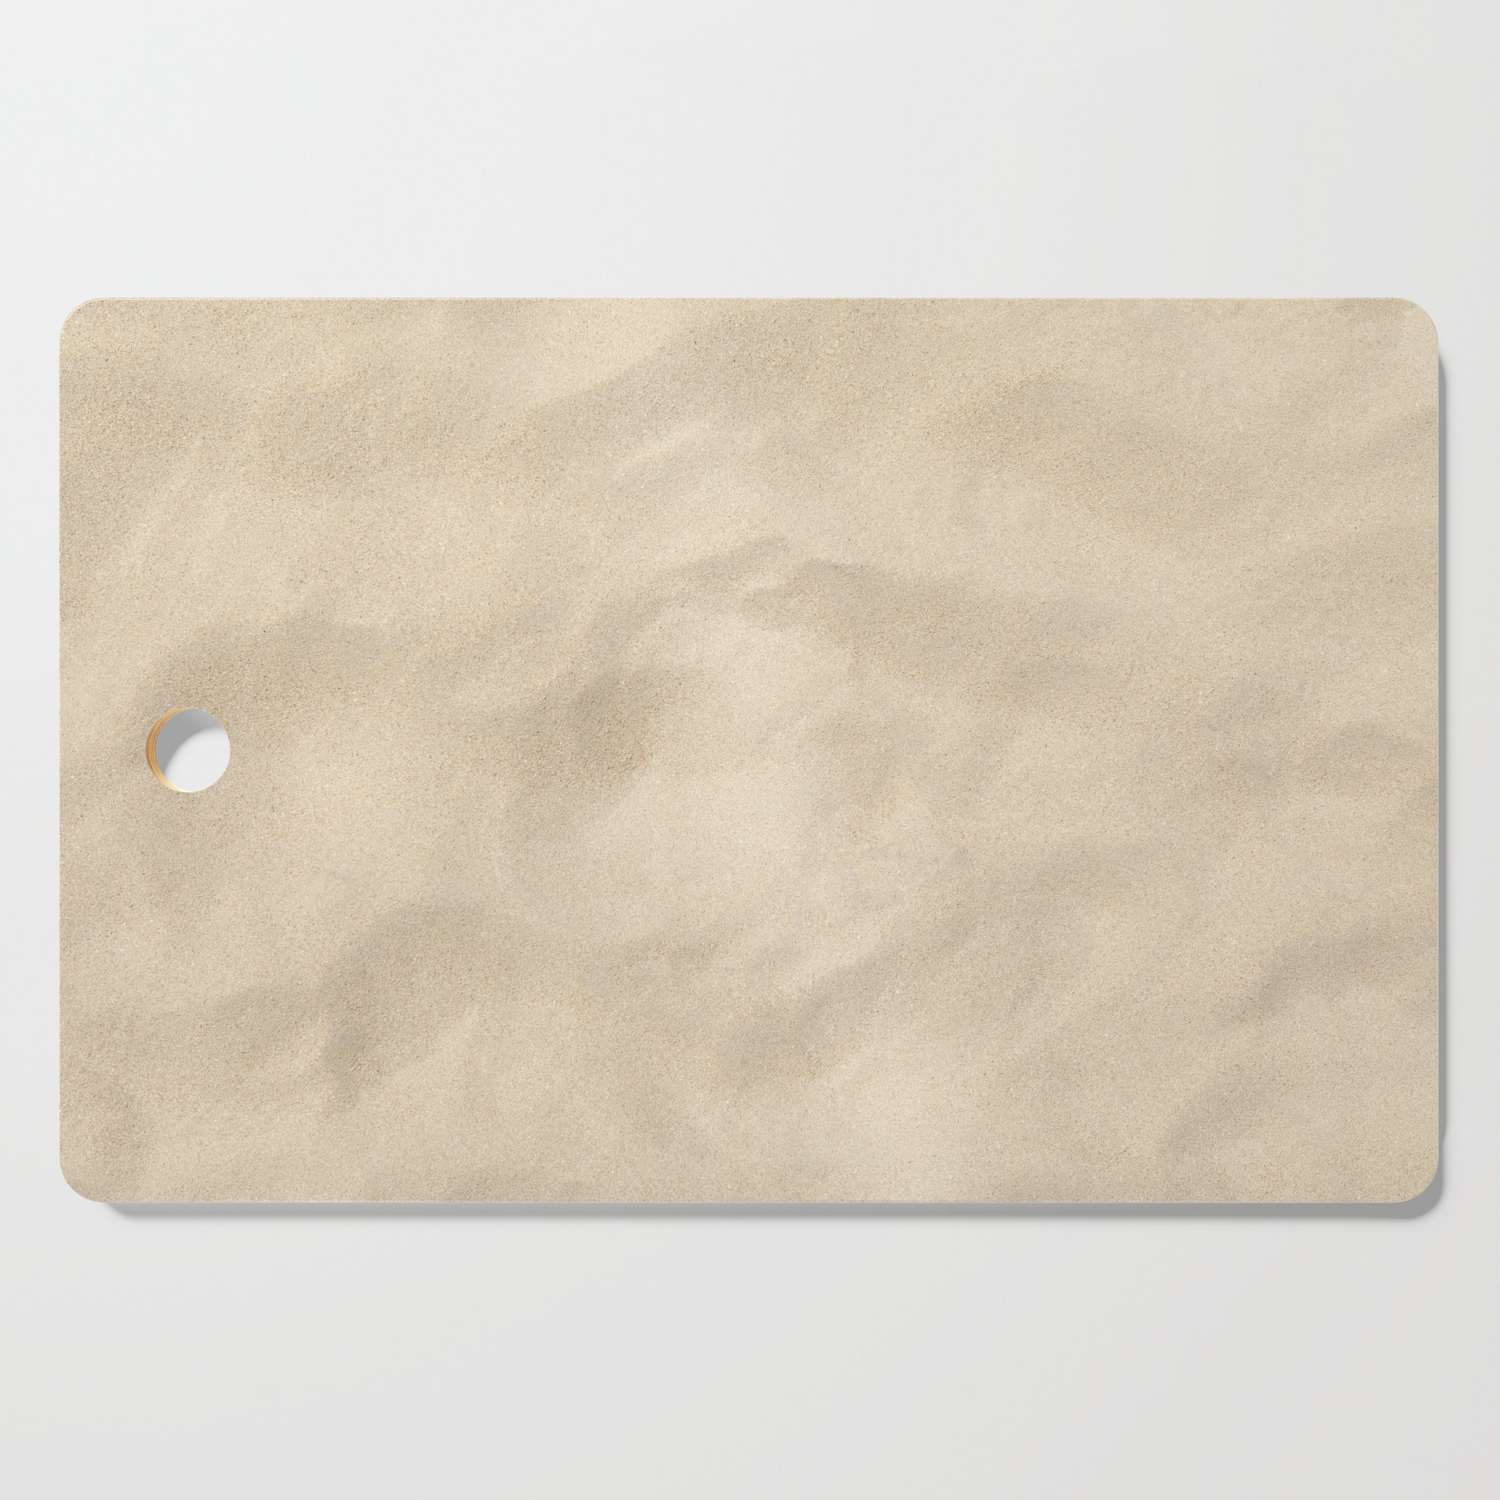 Light Brown Sand Texture Cutting Board By Moonfluff